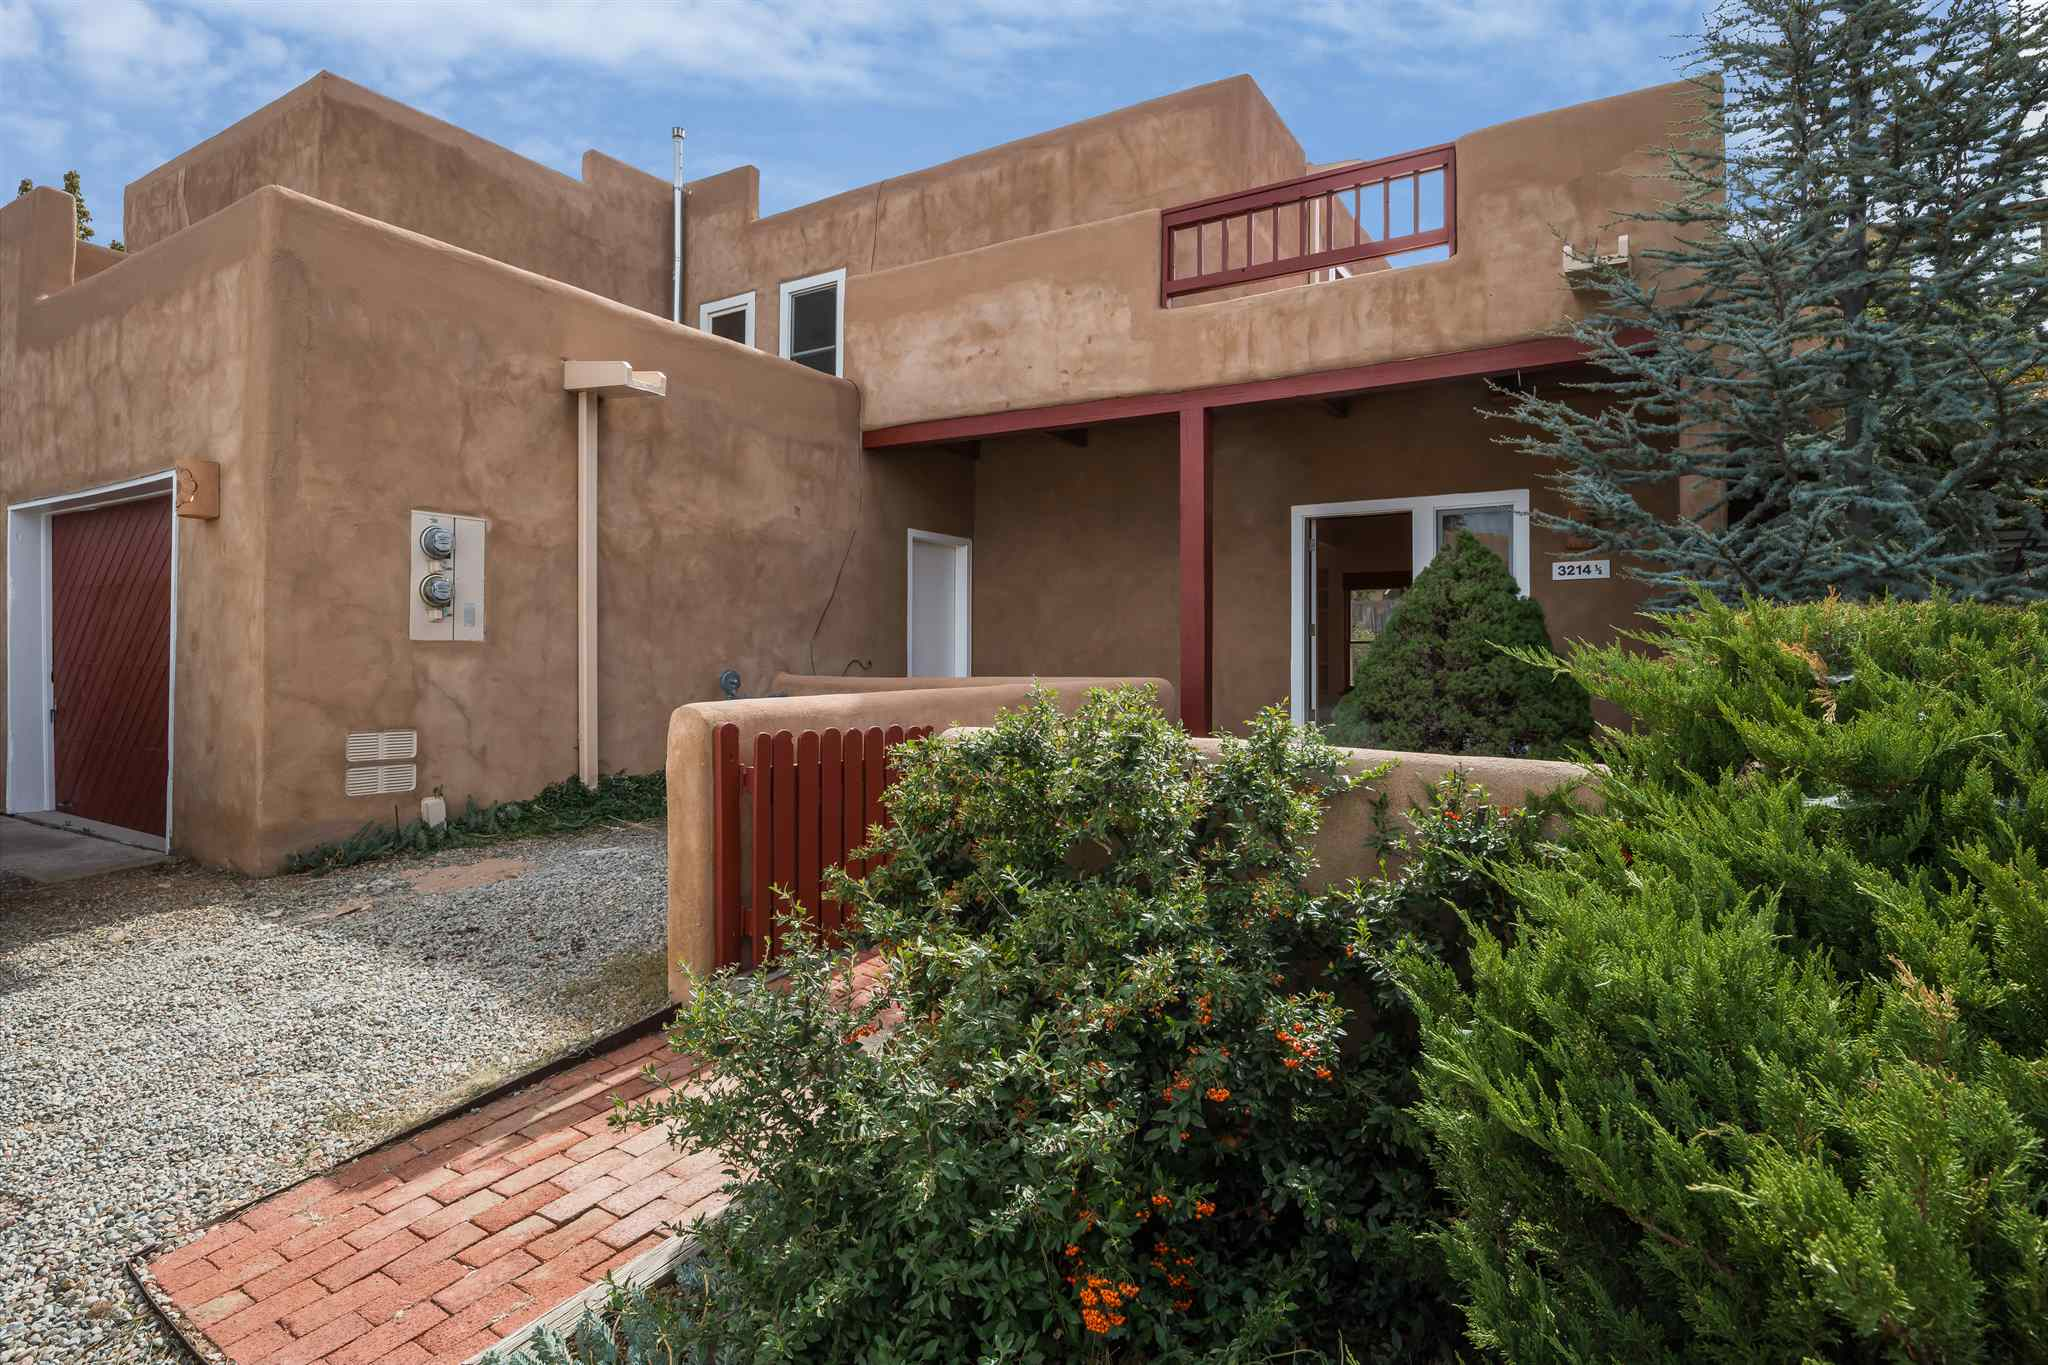 Step into this lovely townhome, with plenty of natural light, quintessential Santa Fe brick floors, and an upstairs deck with views of the Sangre De Cristo and Jemez mountains.  Welcome to Las Quintas!  Centrally located, this home is close to the Genoveva Chavez Community Center, shopping, and nature trails.   A recently remodeled kitchen with a pantry and new appliances looks over an open dining area and living room with a wood burning fireplace and built-in shelves.  There is also a powder room and laundry room on the main level.  Upstairs there are two bedrooms, one full bath, more built-in shelving, and access to the rooftop deck, perfect for stargazing.  Both baths have been recently updated with tile countertops and new fixtures.   An attached, finished garage leads to a welcoming front courtyard and covered entry to the home.  The backyard is fully enclosed by a coyote fence and features a flagstone patio and ample space for gardening.